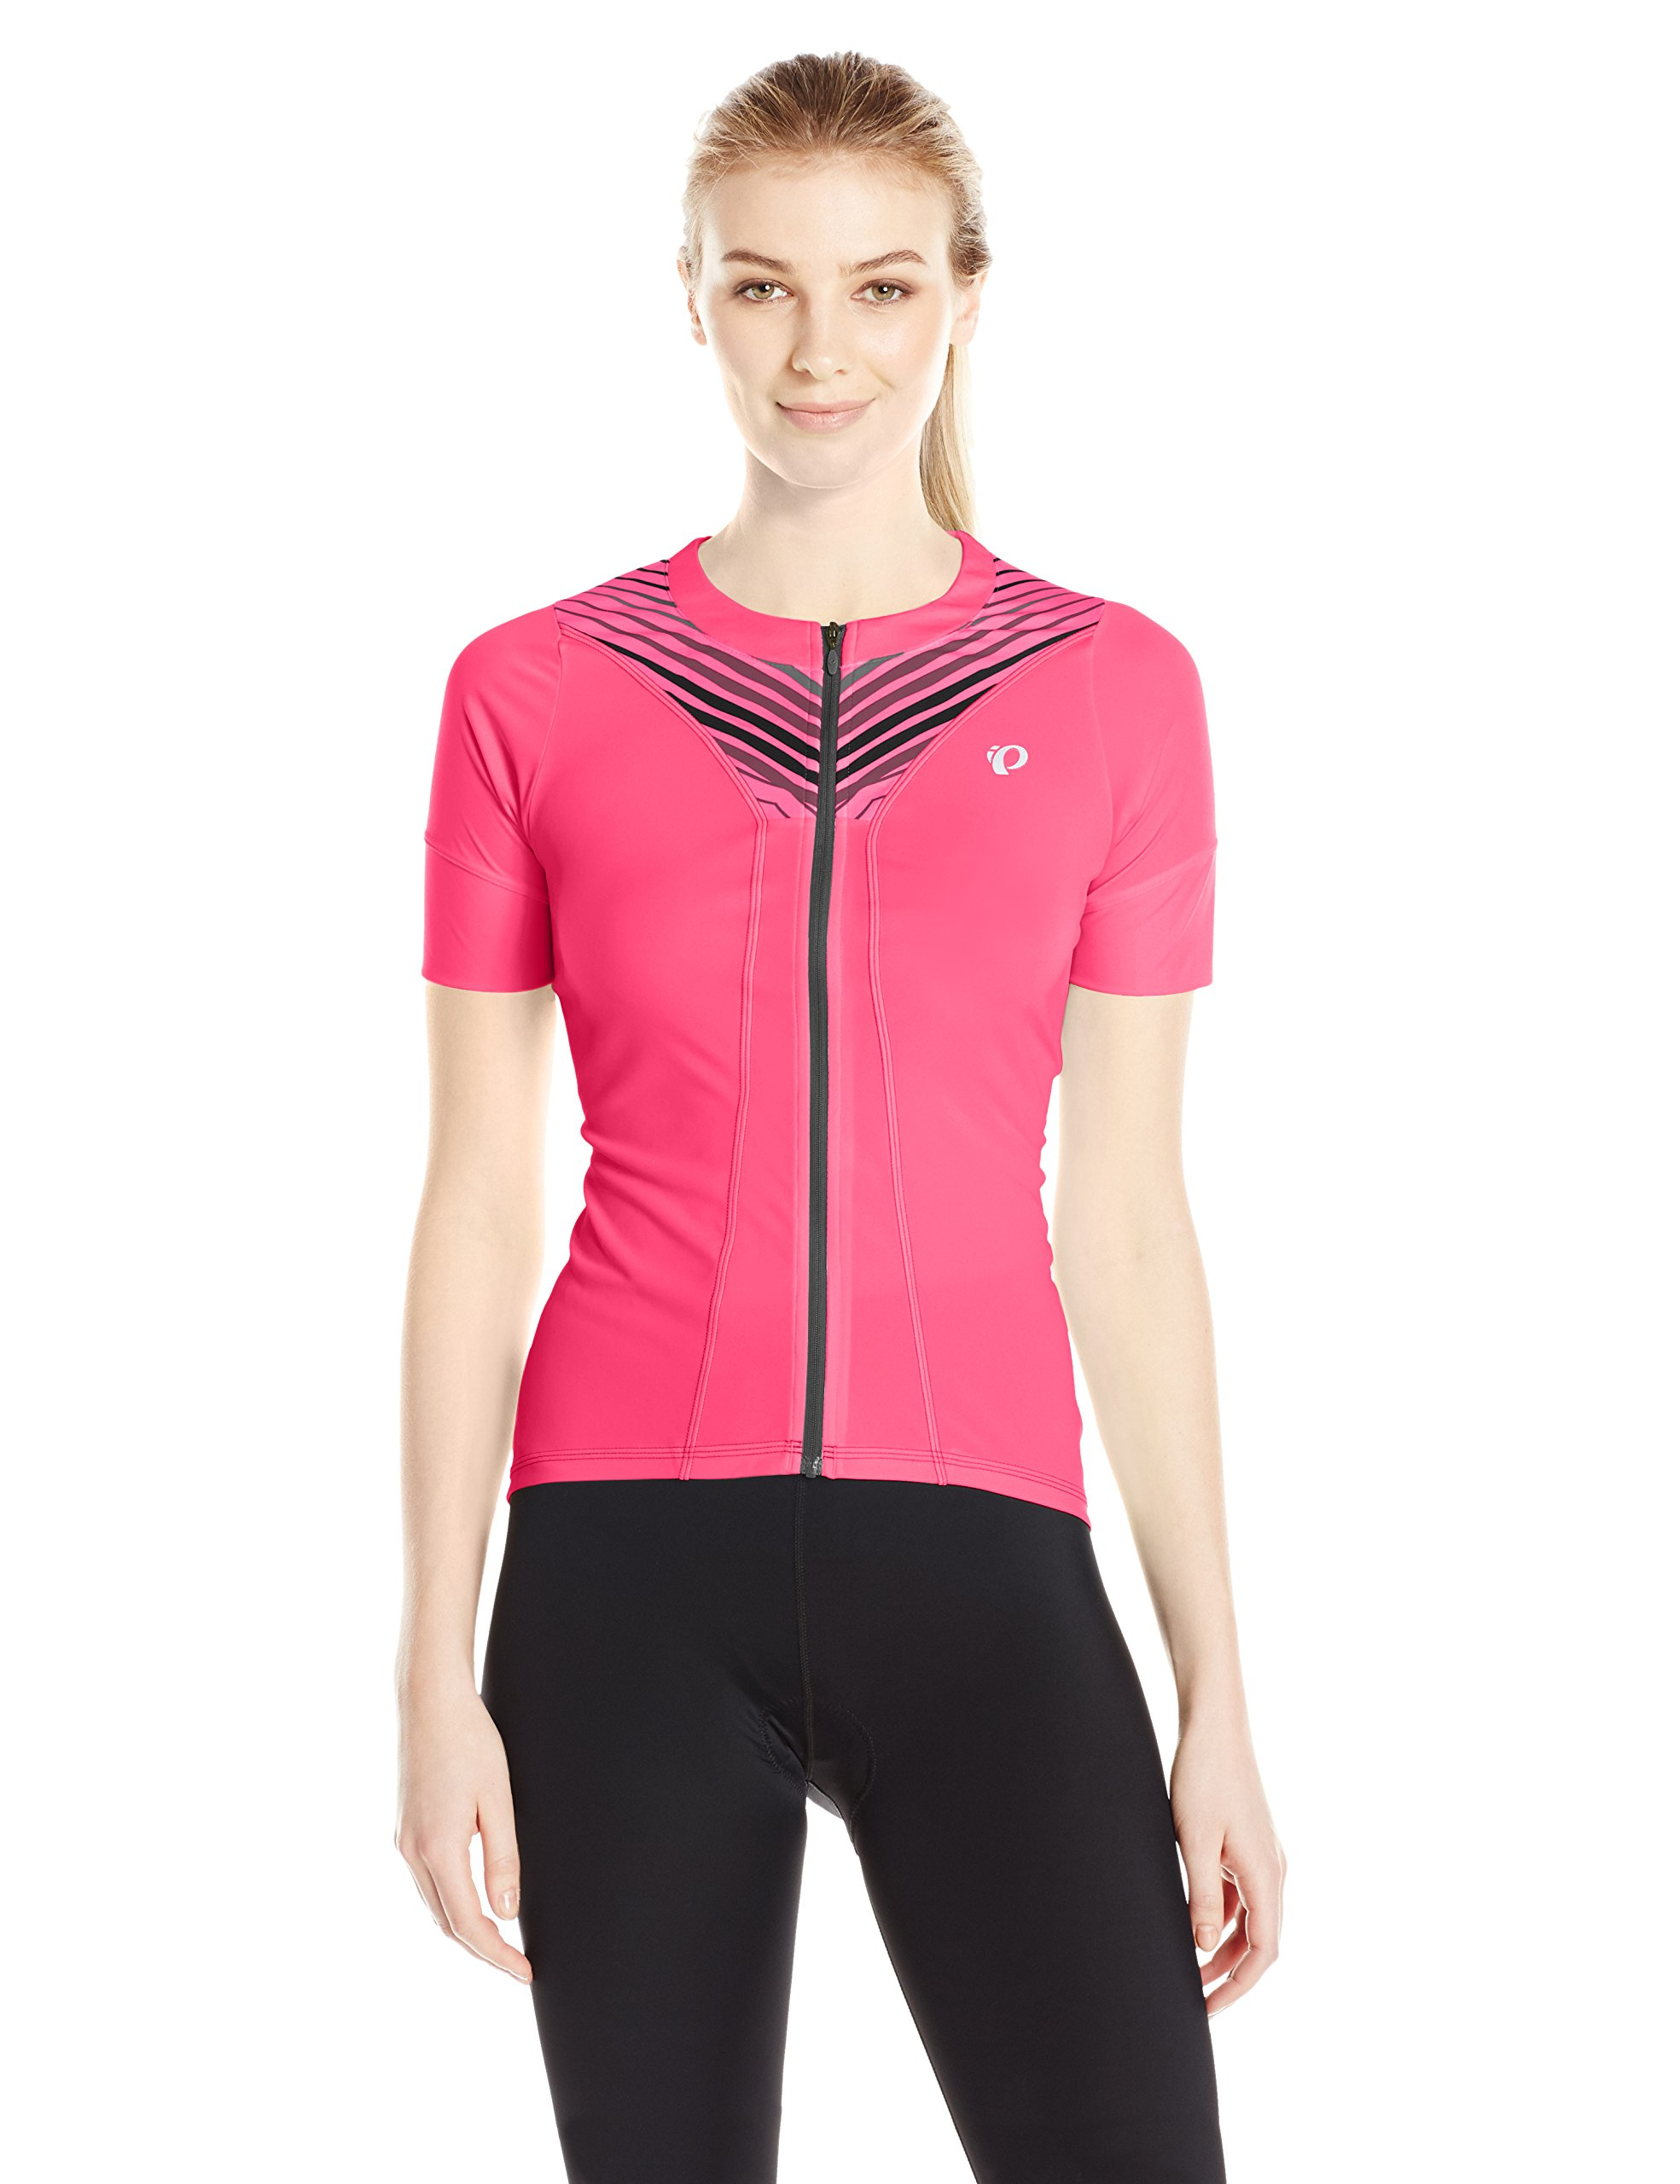 PEARL IZUMI Women's W Select Pursuit Short Sleeve Jersey, Screaming Pink Whirl, Large by PEARL IZUMI